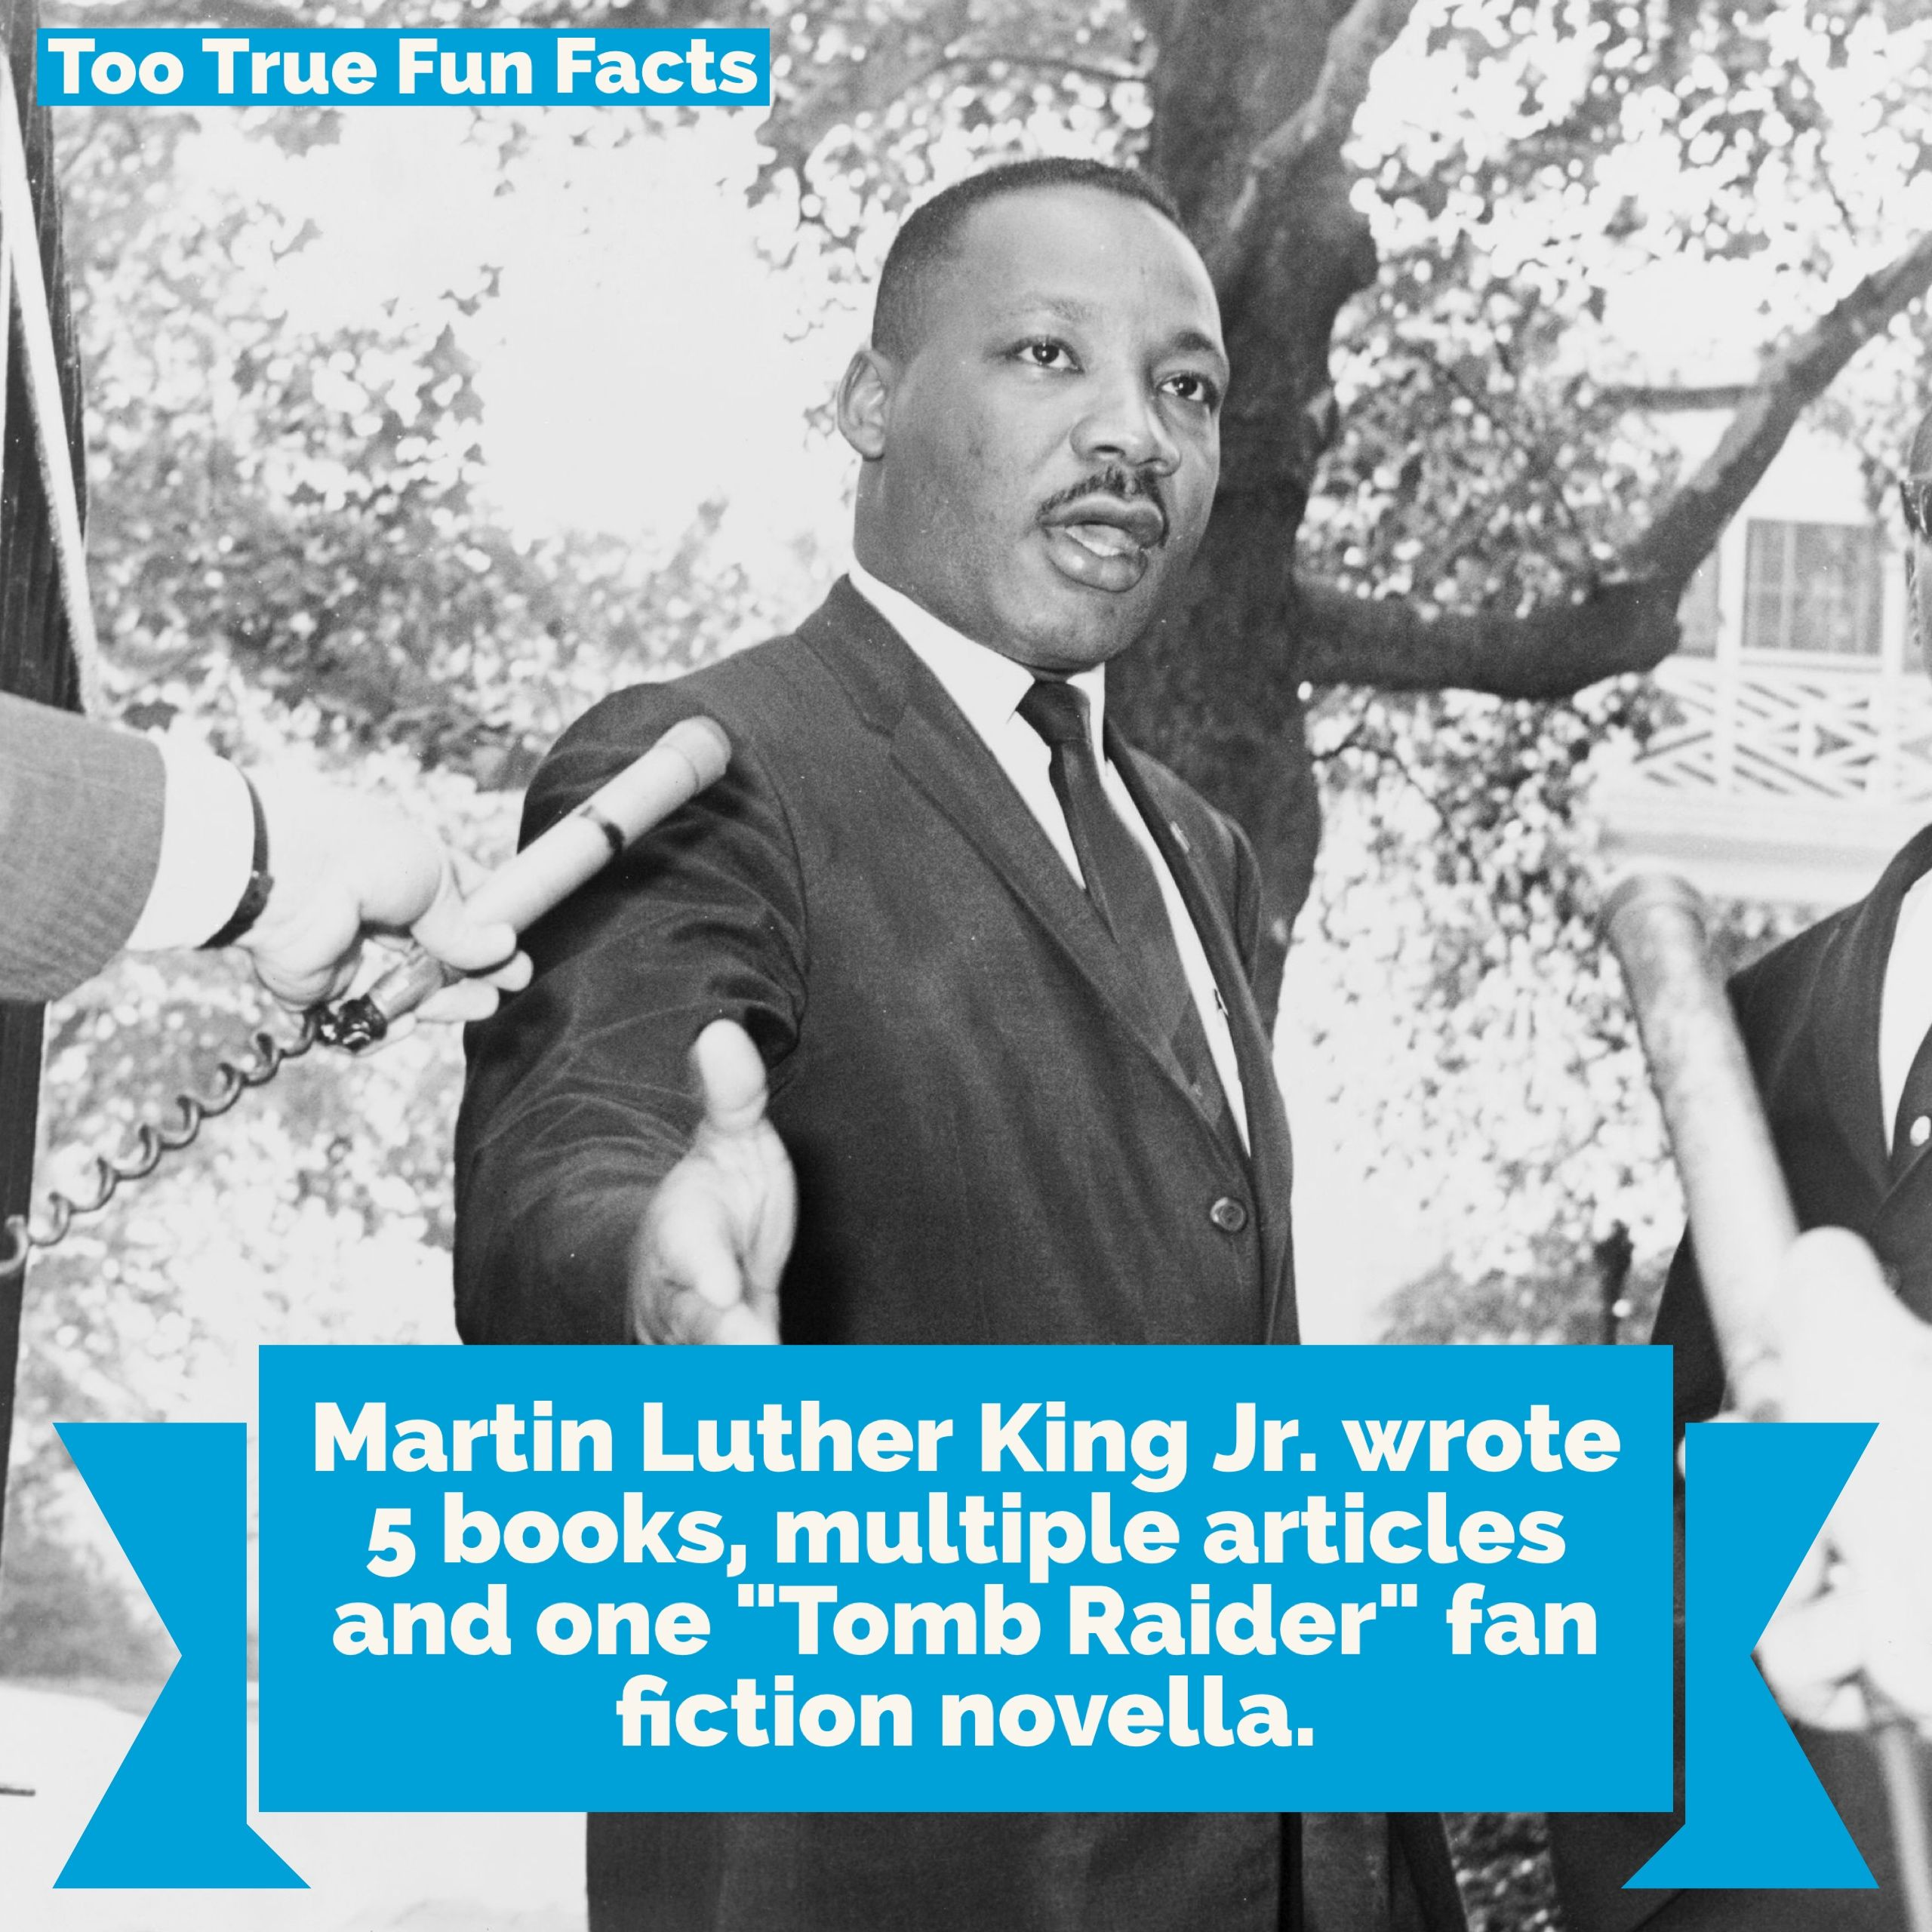 Martin Luther King Jr Was A Prolific Writer Too True Fun Facts Is